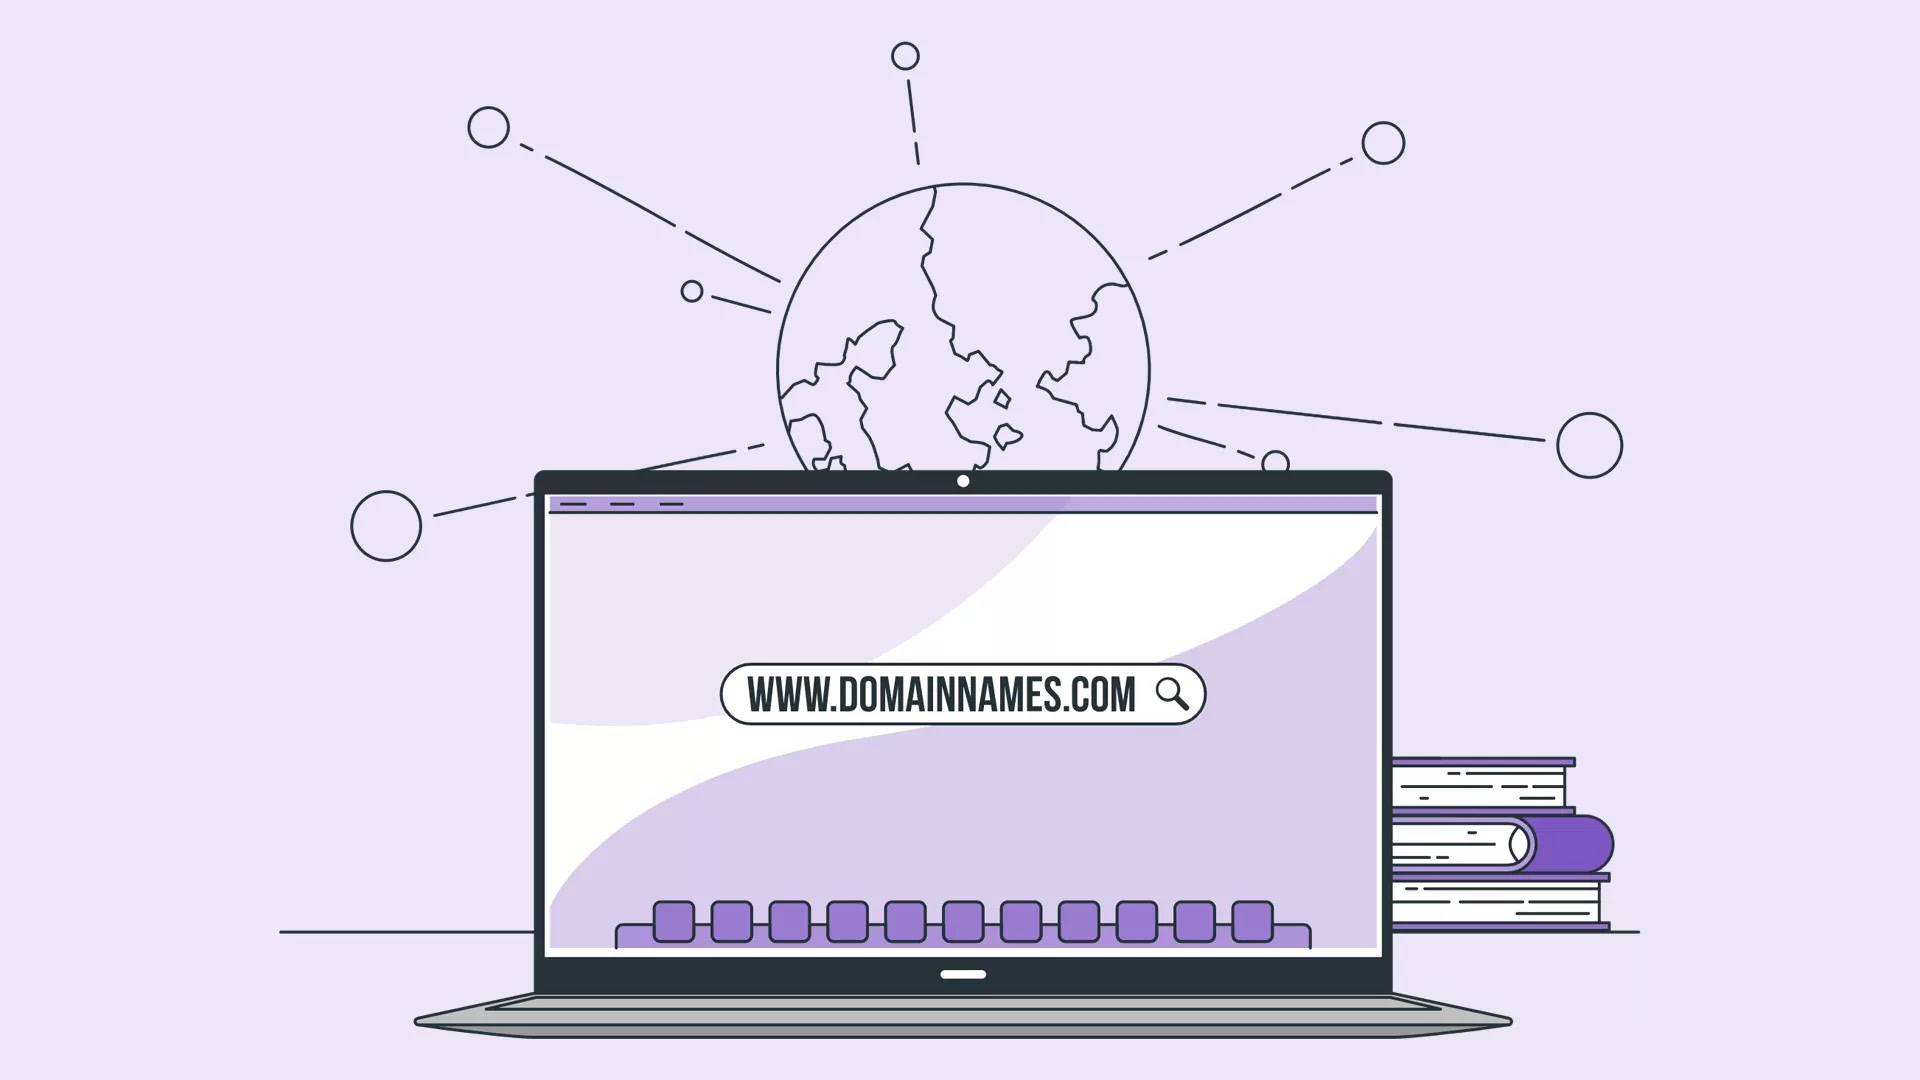 create an unlimited subdomain with cPanel